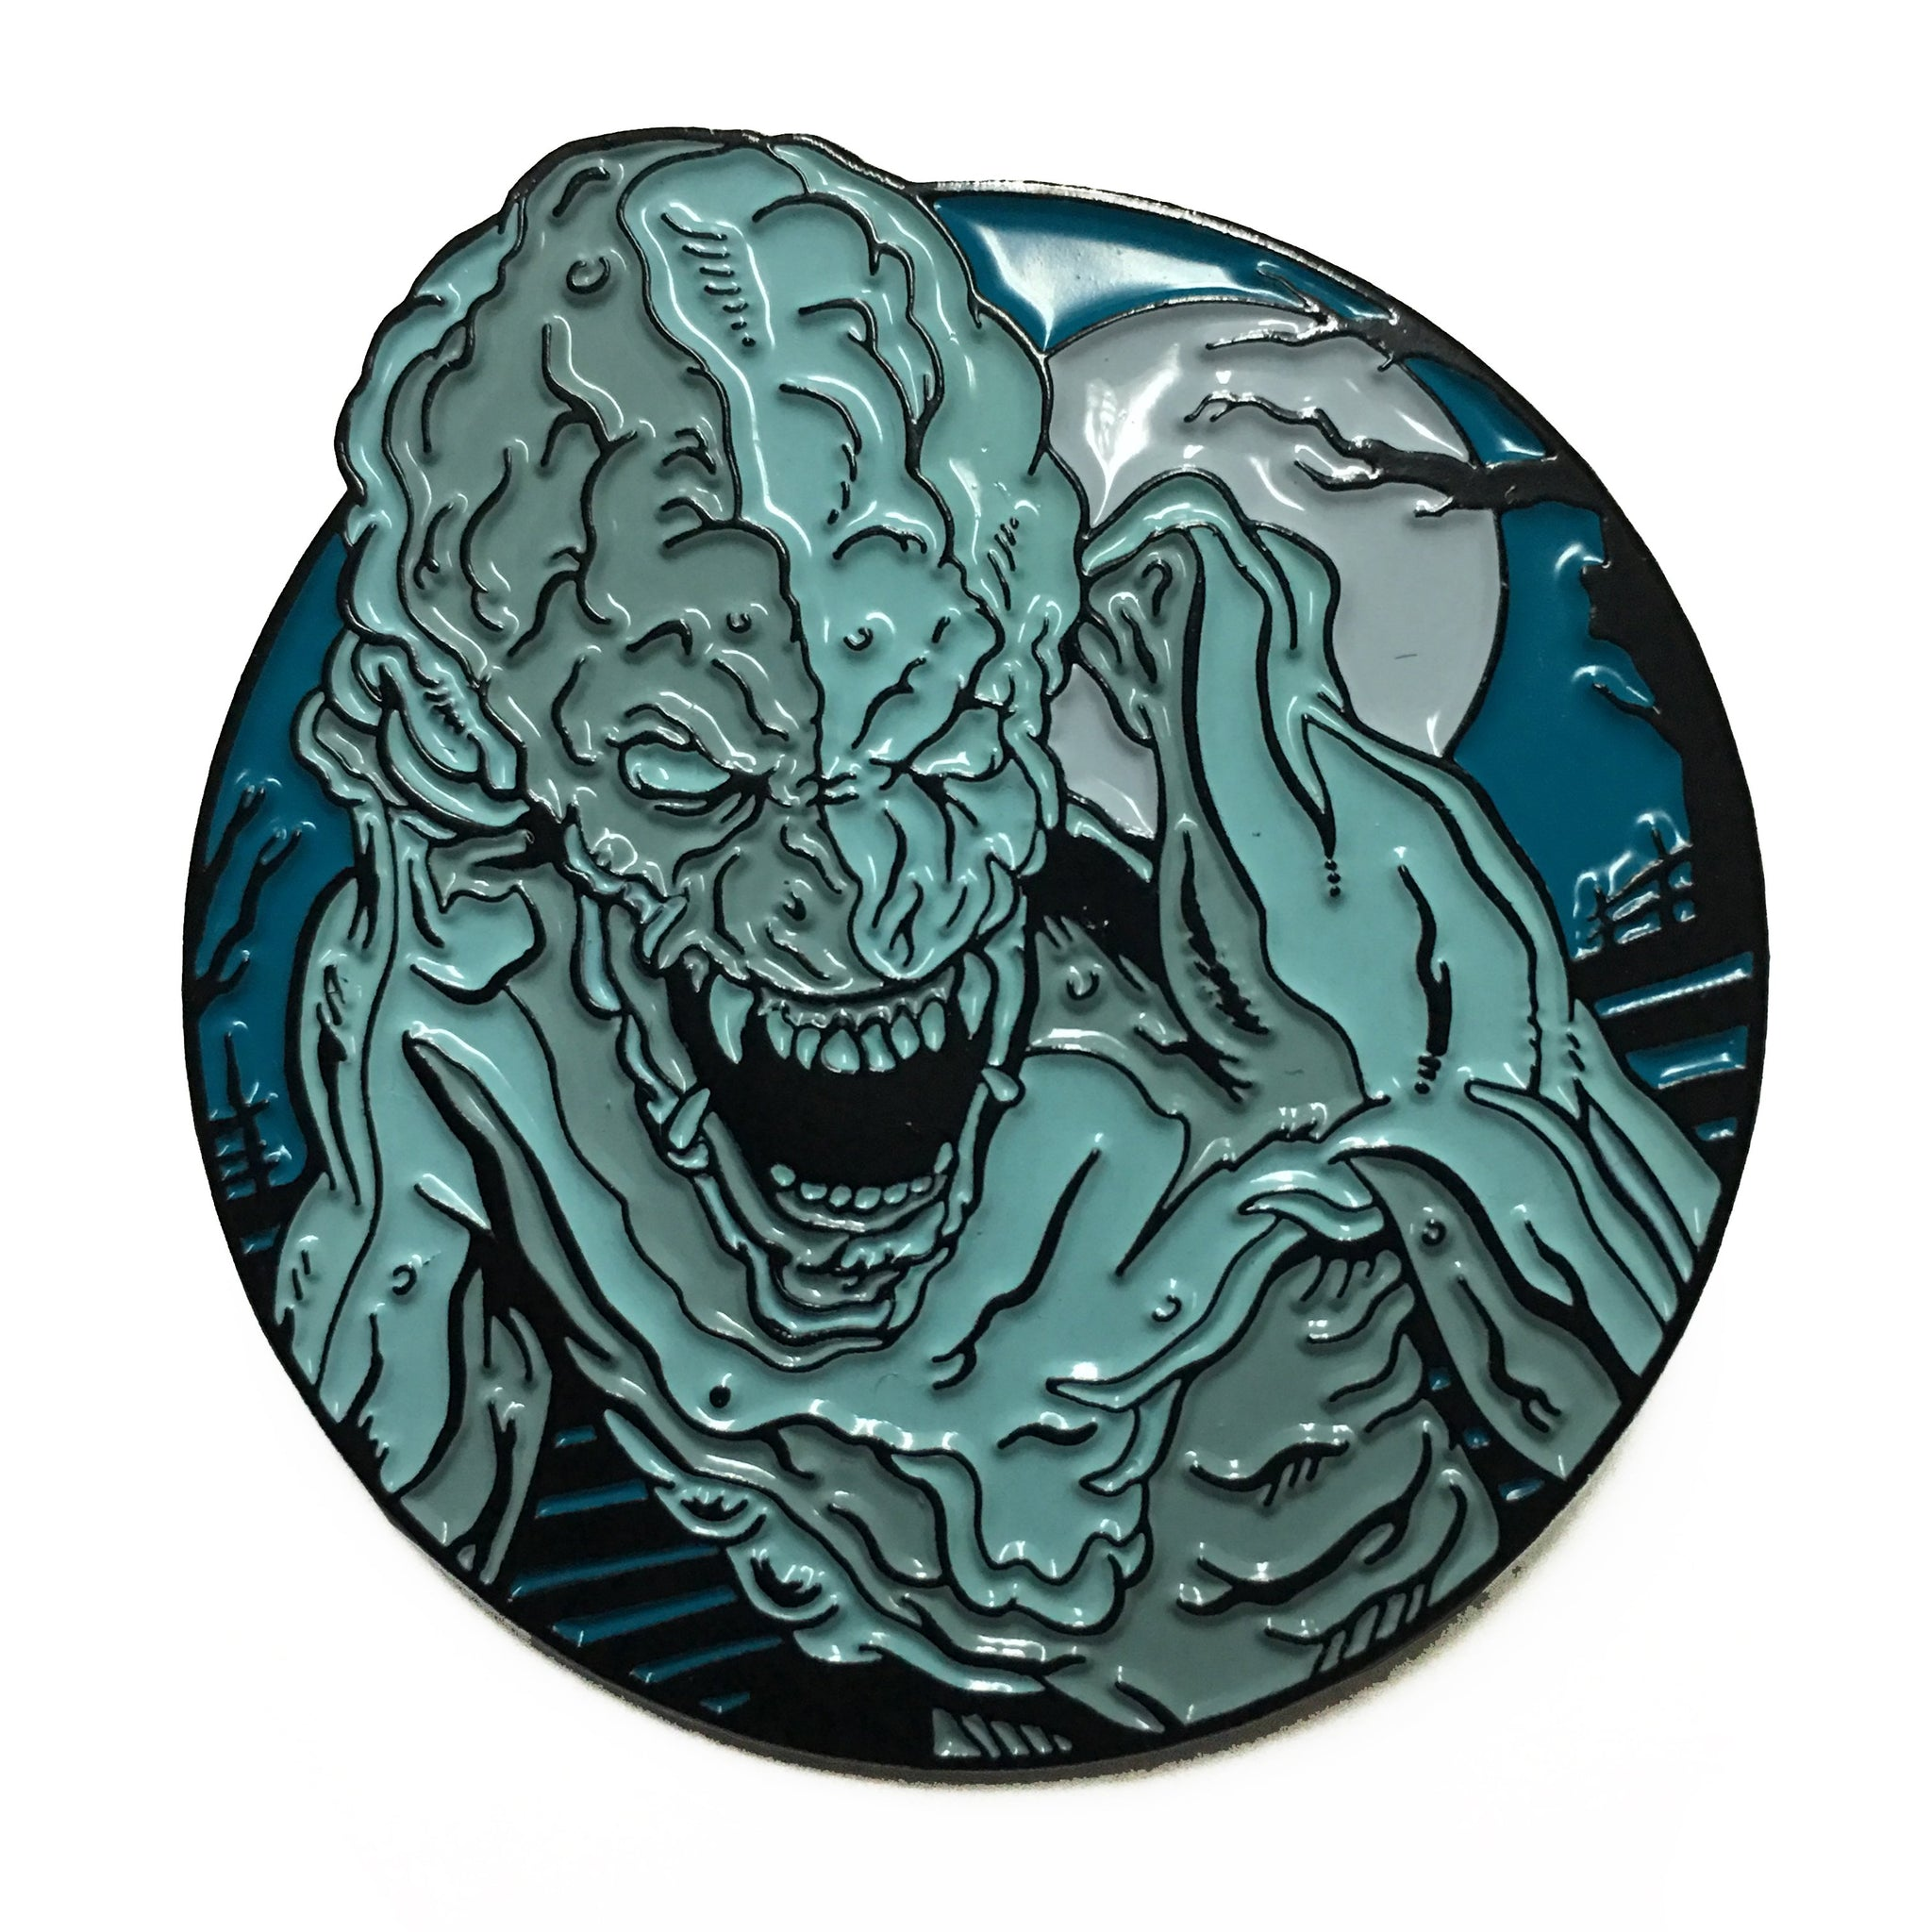 Blood Harvest Moonlight Variant Limited Edition Enamel Pin